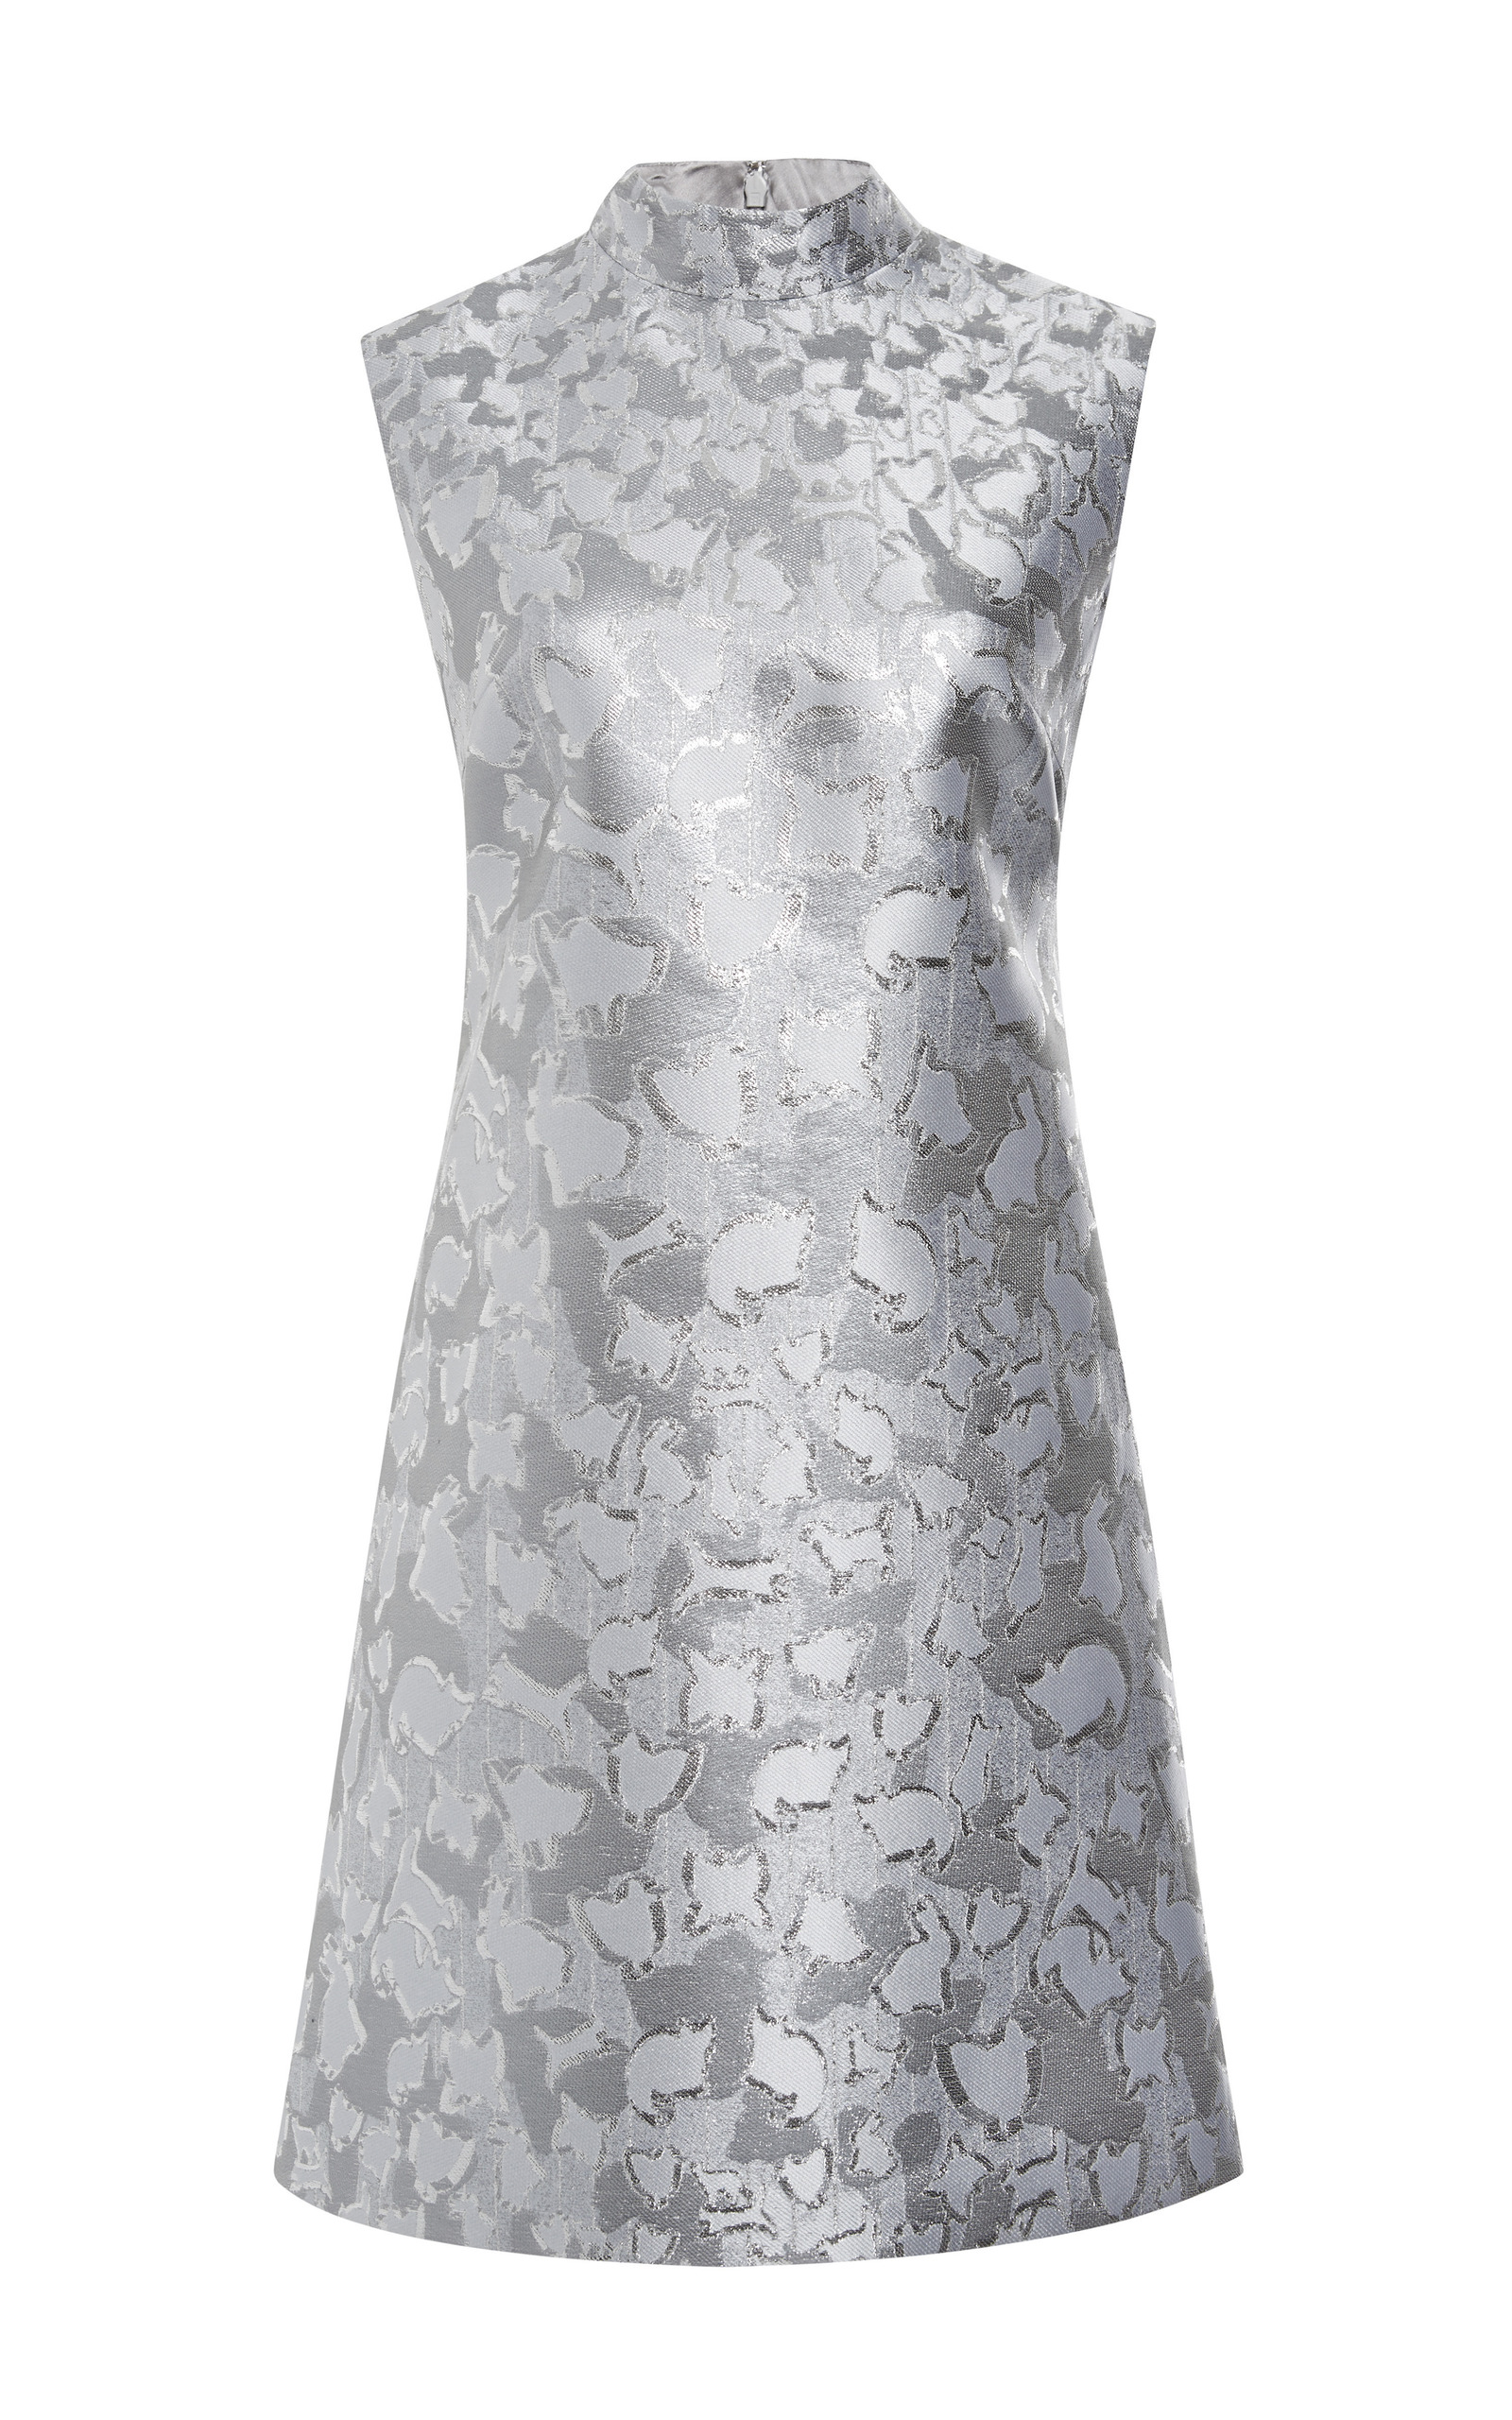 c9335a7a6eb Jacquard Mini Shift Dress by Mary Katrantzou